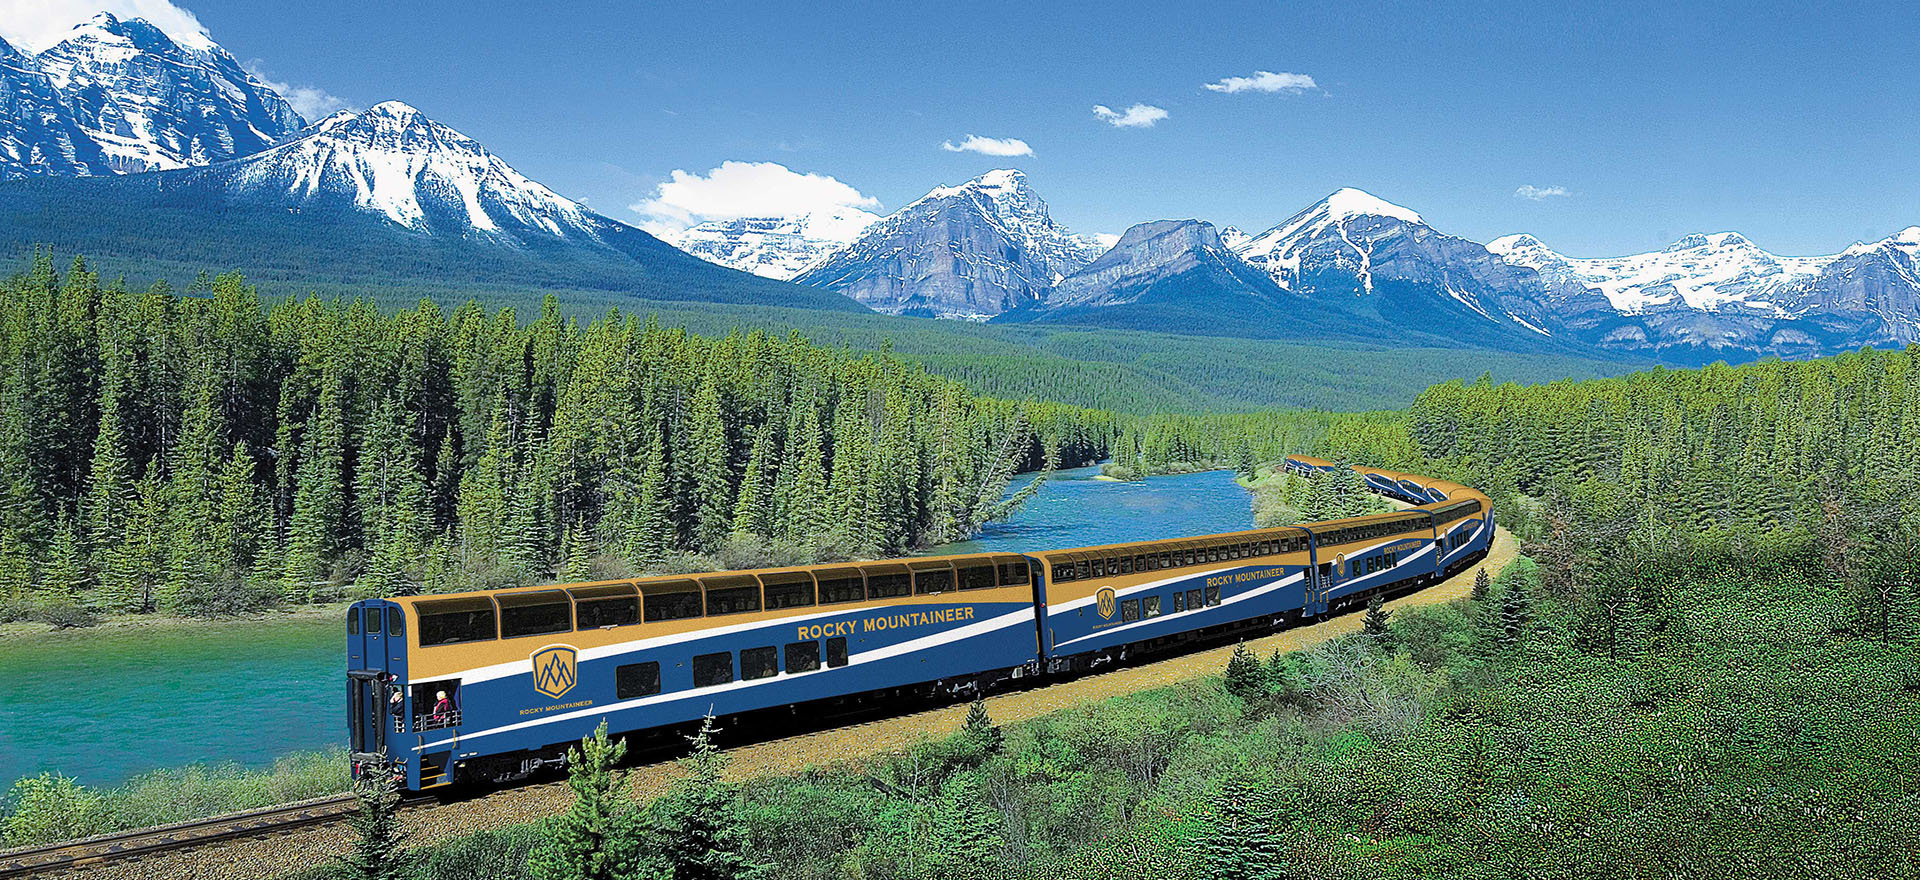 rocky mountaineer | train | canada | canadian rockies | Tours to Canada